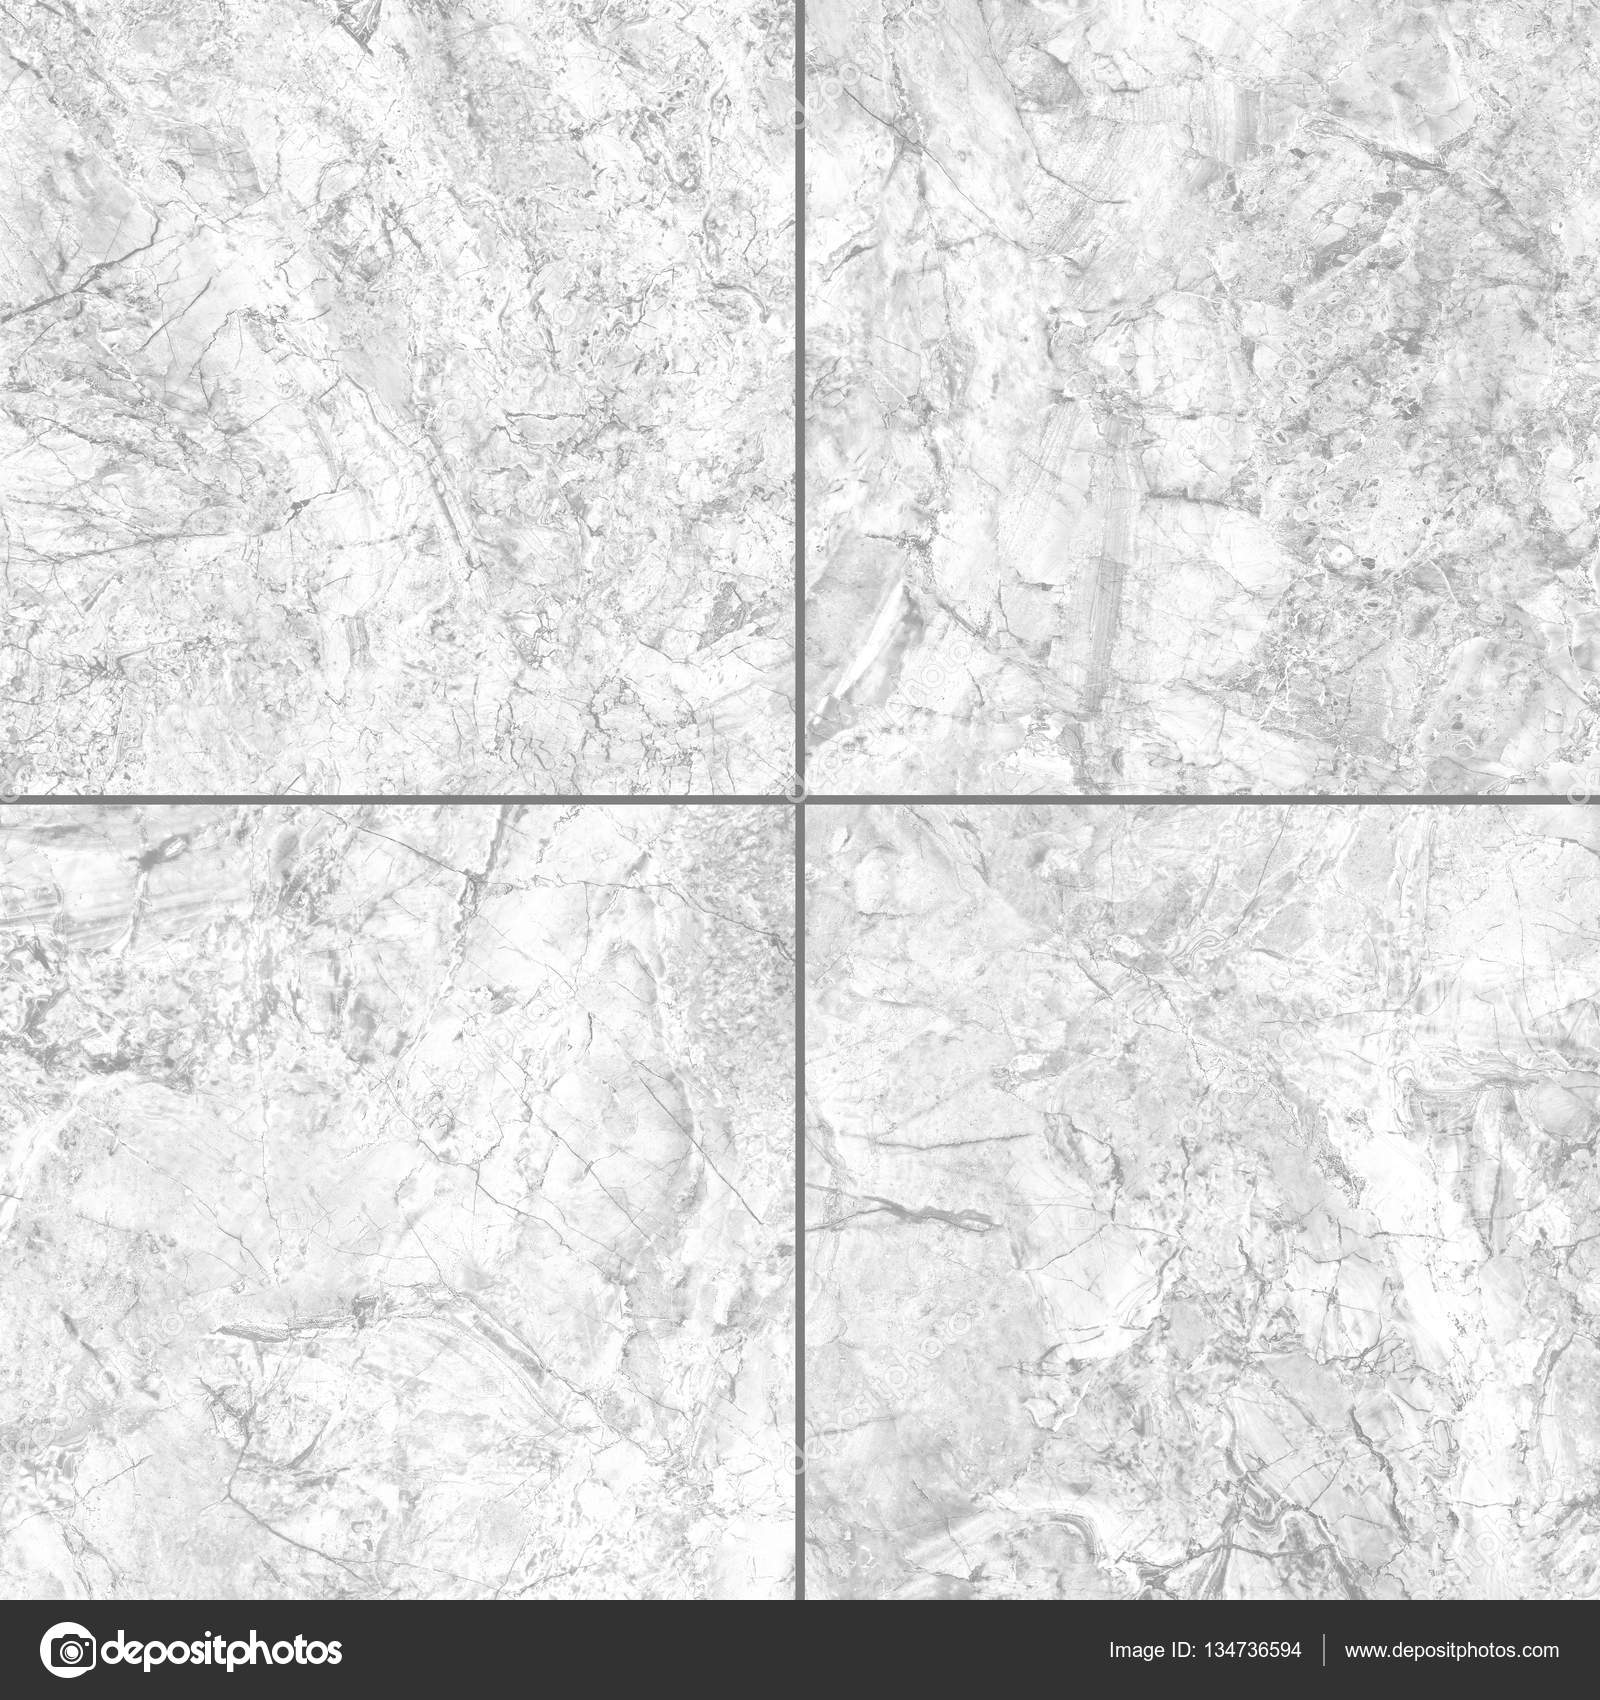 White Marble Texture High Res Stock Photo C Mg1408 134736594